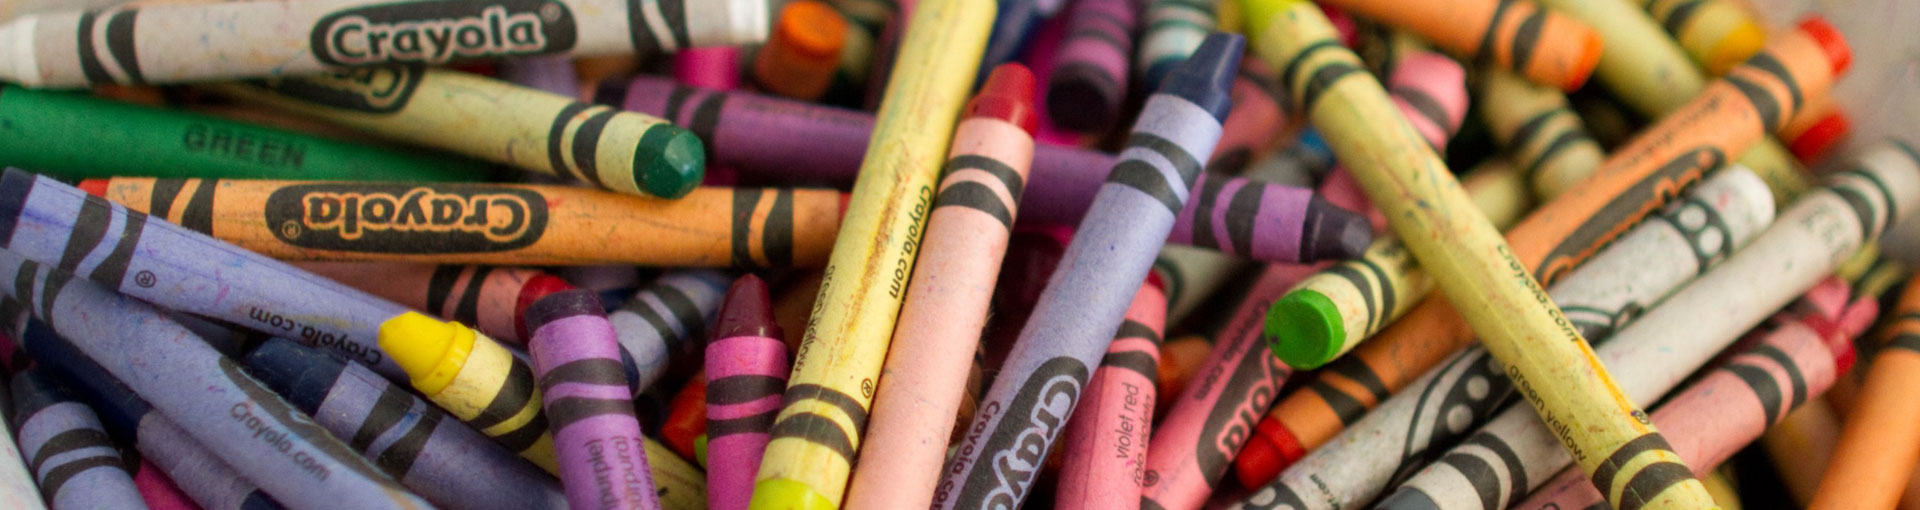 Crayons in a box at Dayspring Christian Academy's preschool in Lancaster PA.